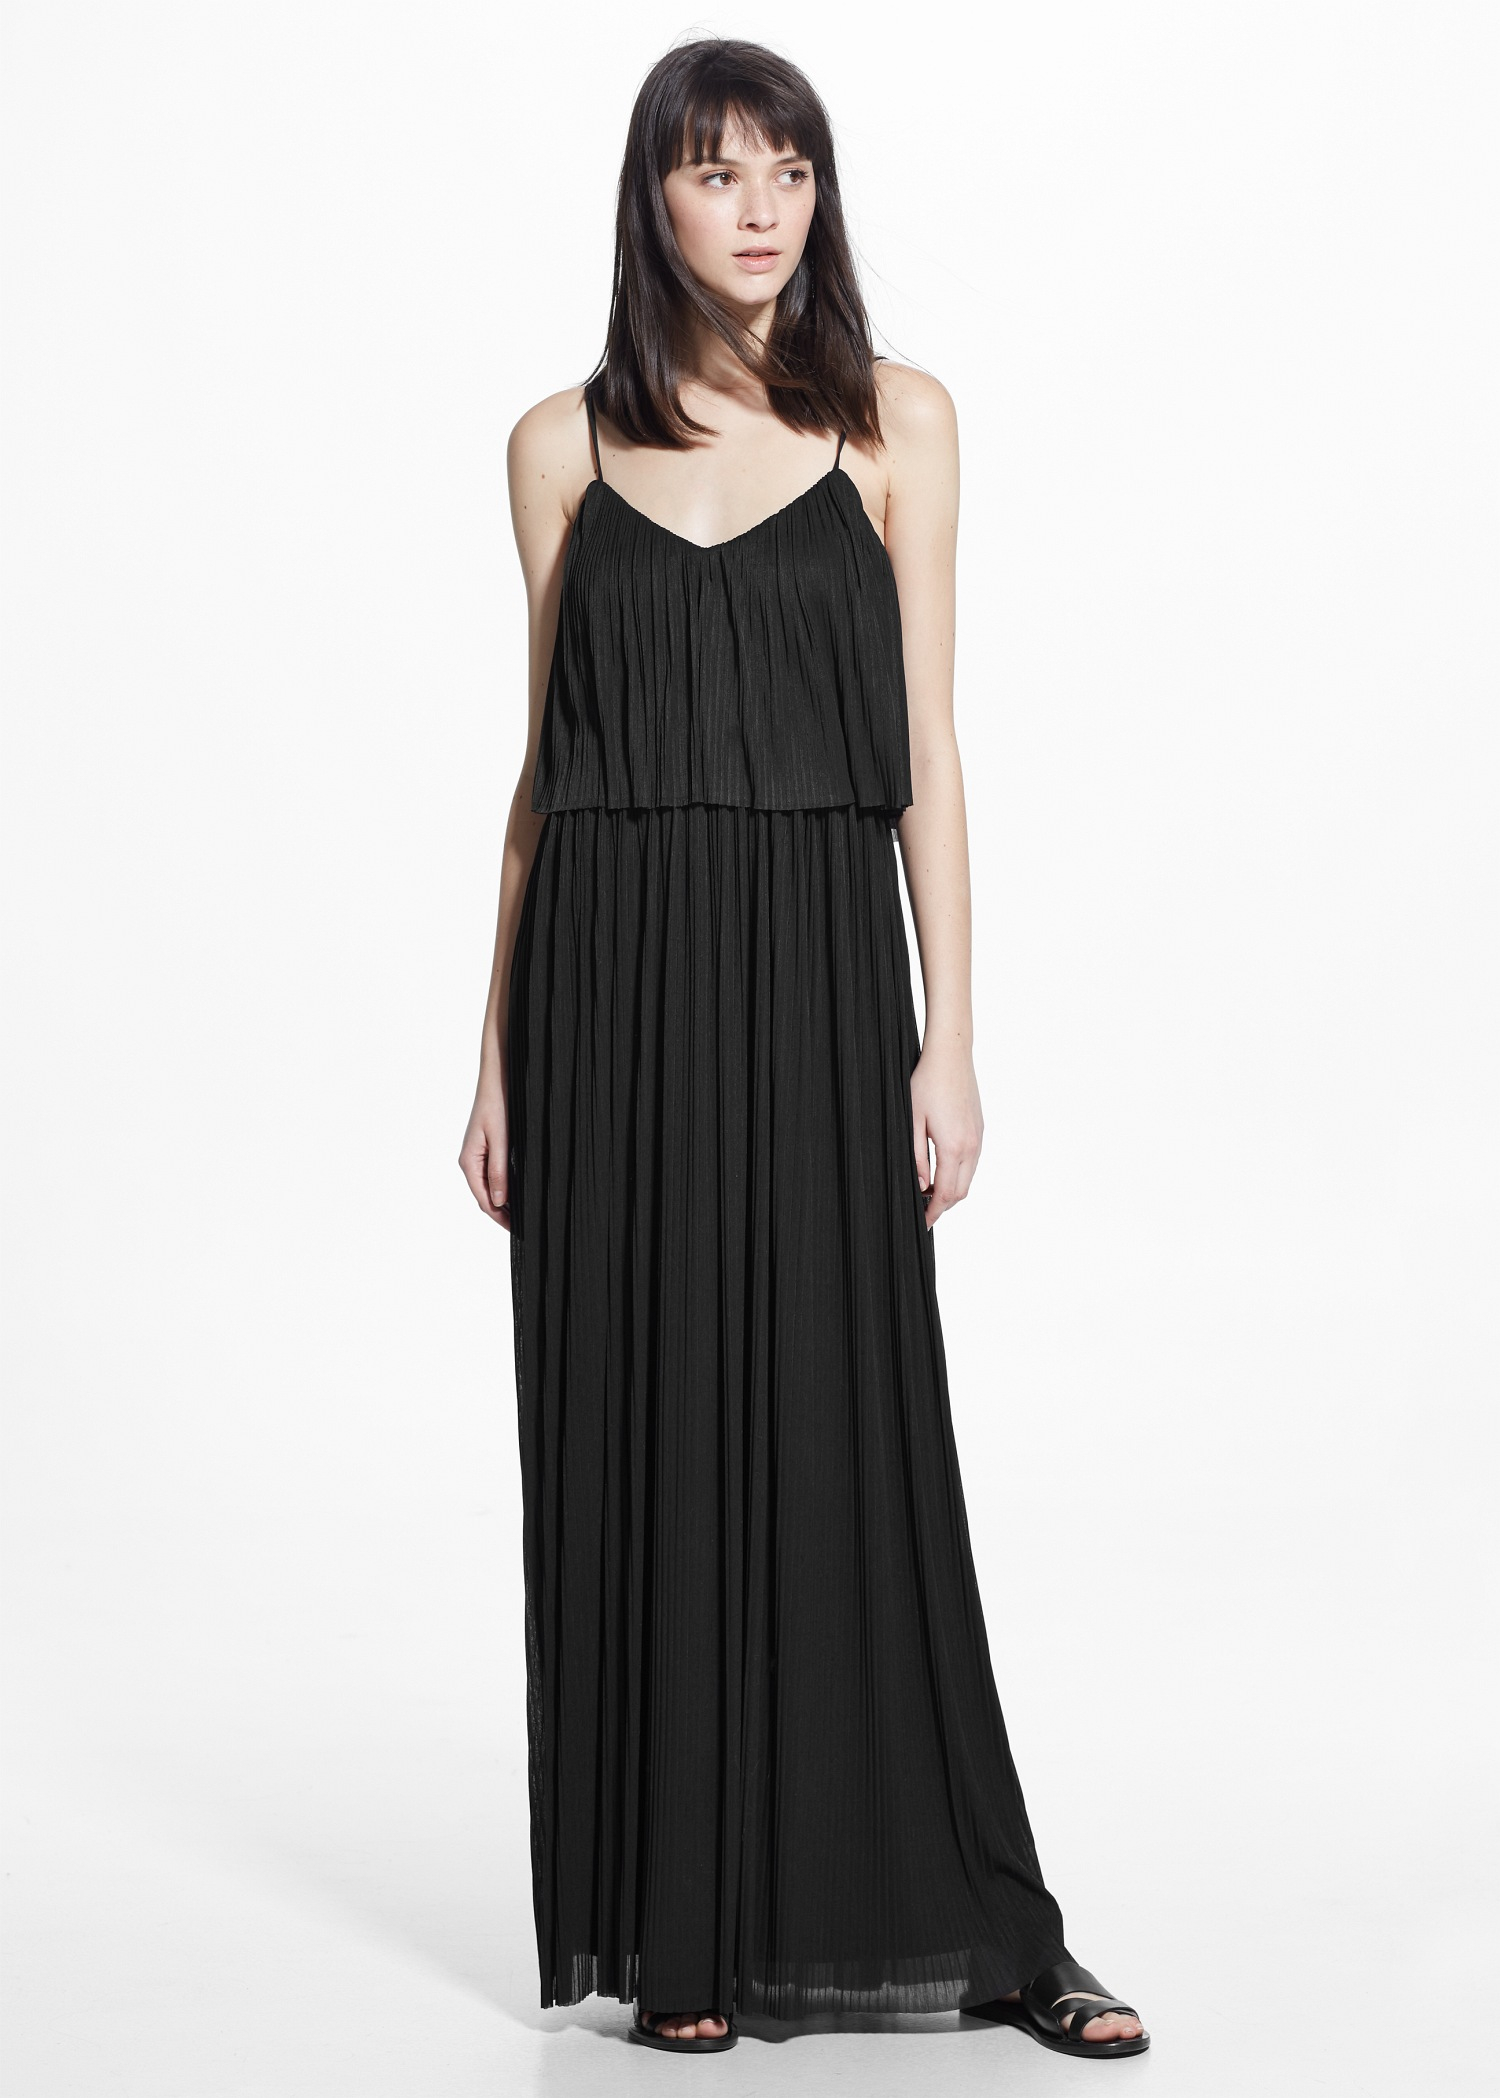 3972a1d811 Long Pleated Dress - Dress Foto and Picture